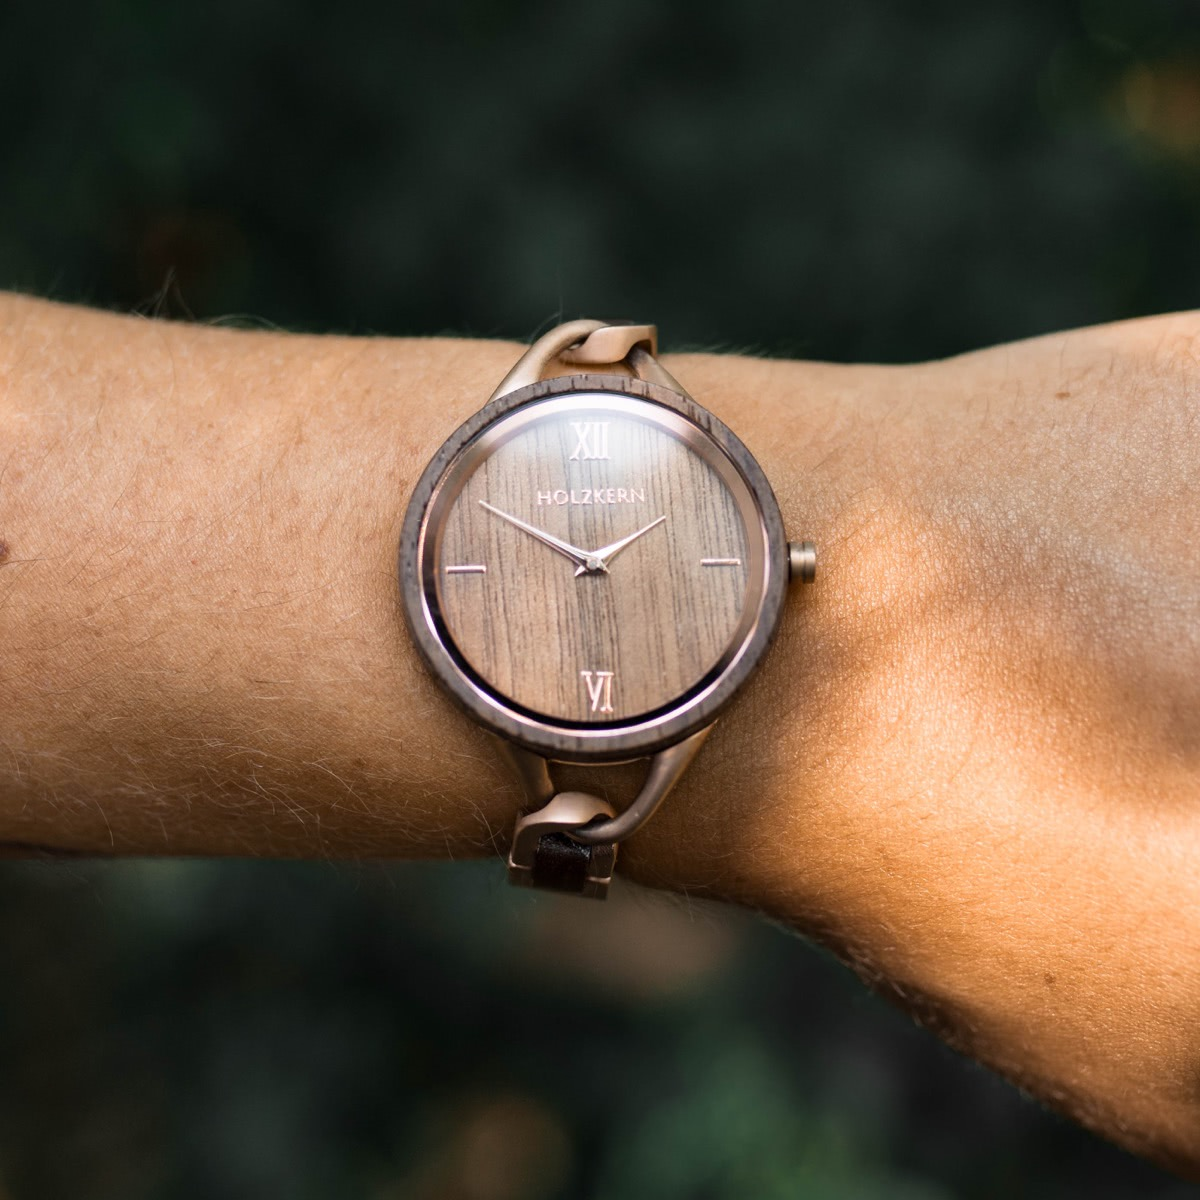 Silk Fiber, a wood watch by Holzkern on a women's wrist